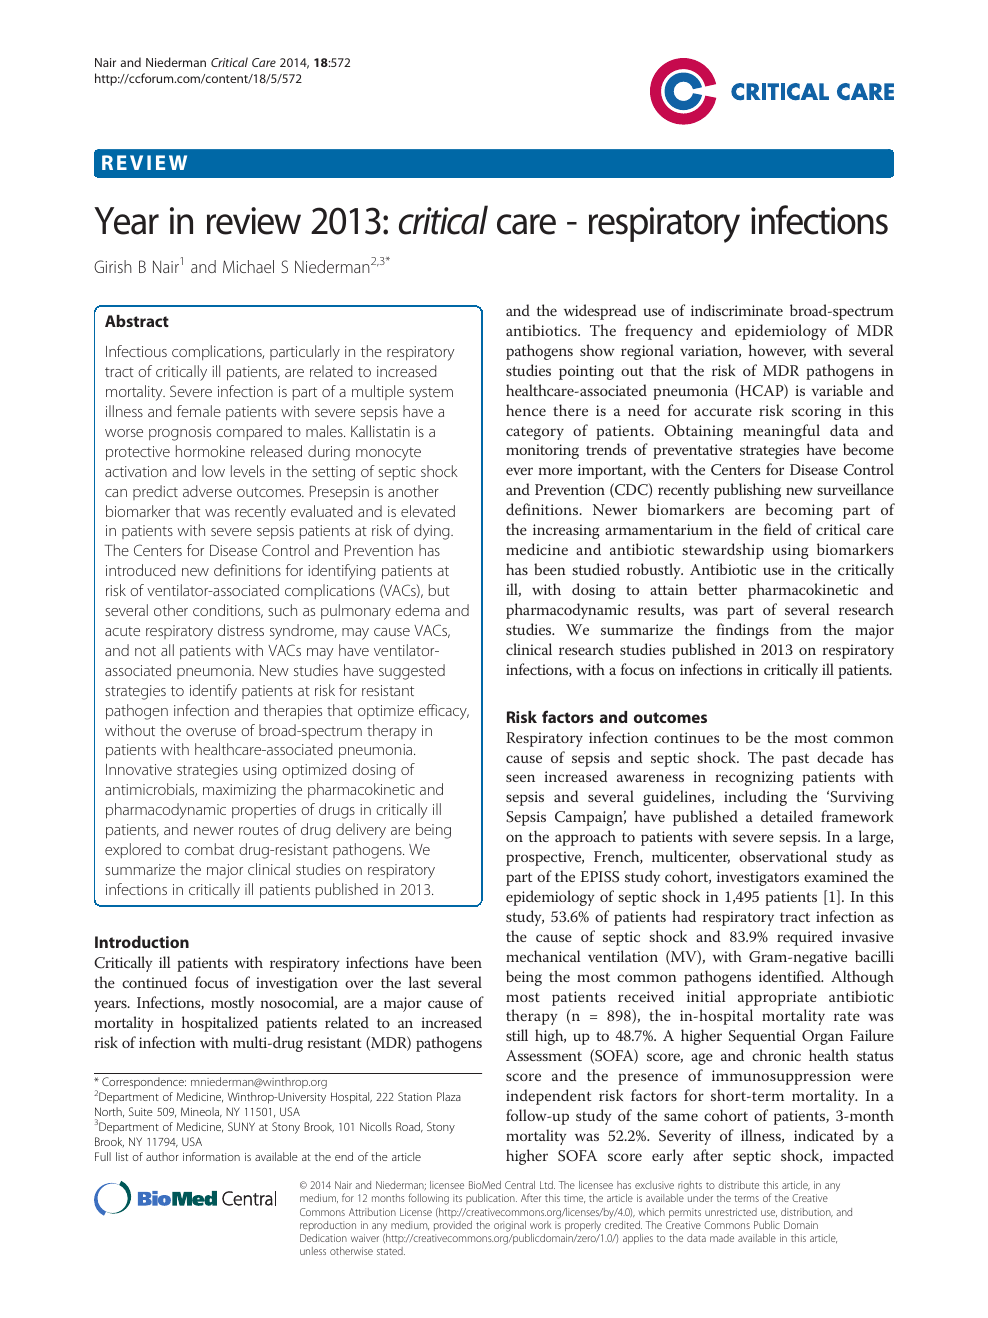 Year in review 2013: critical care - respiratory infections